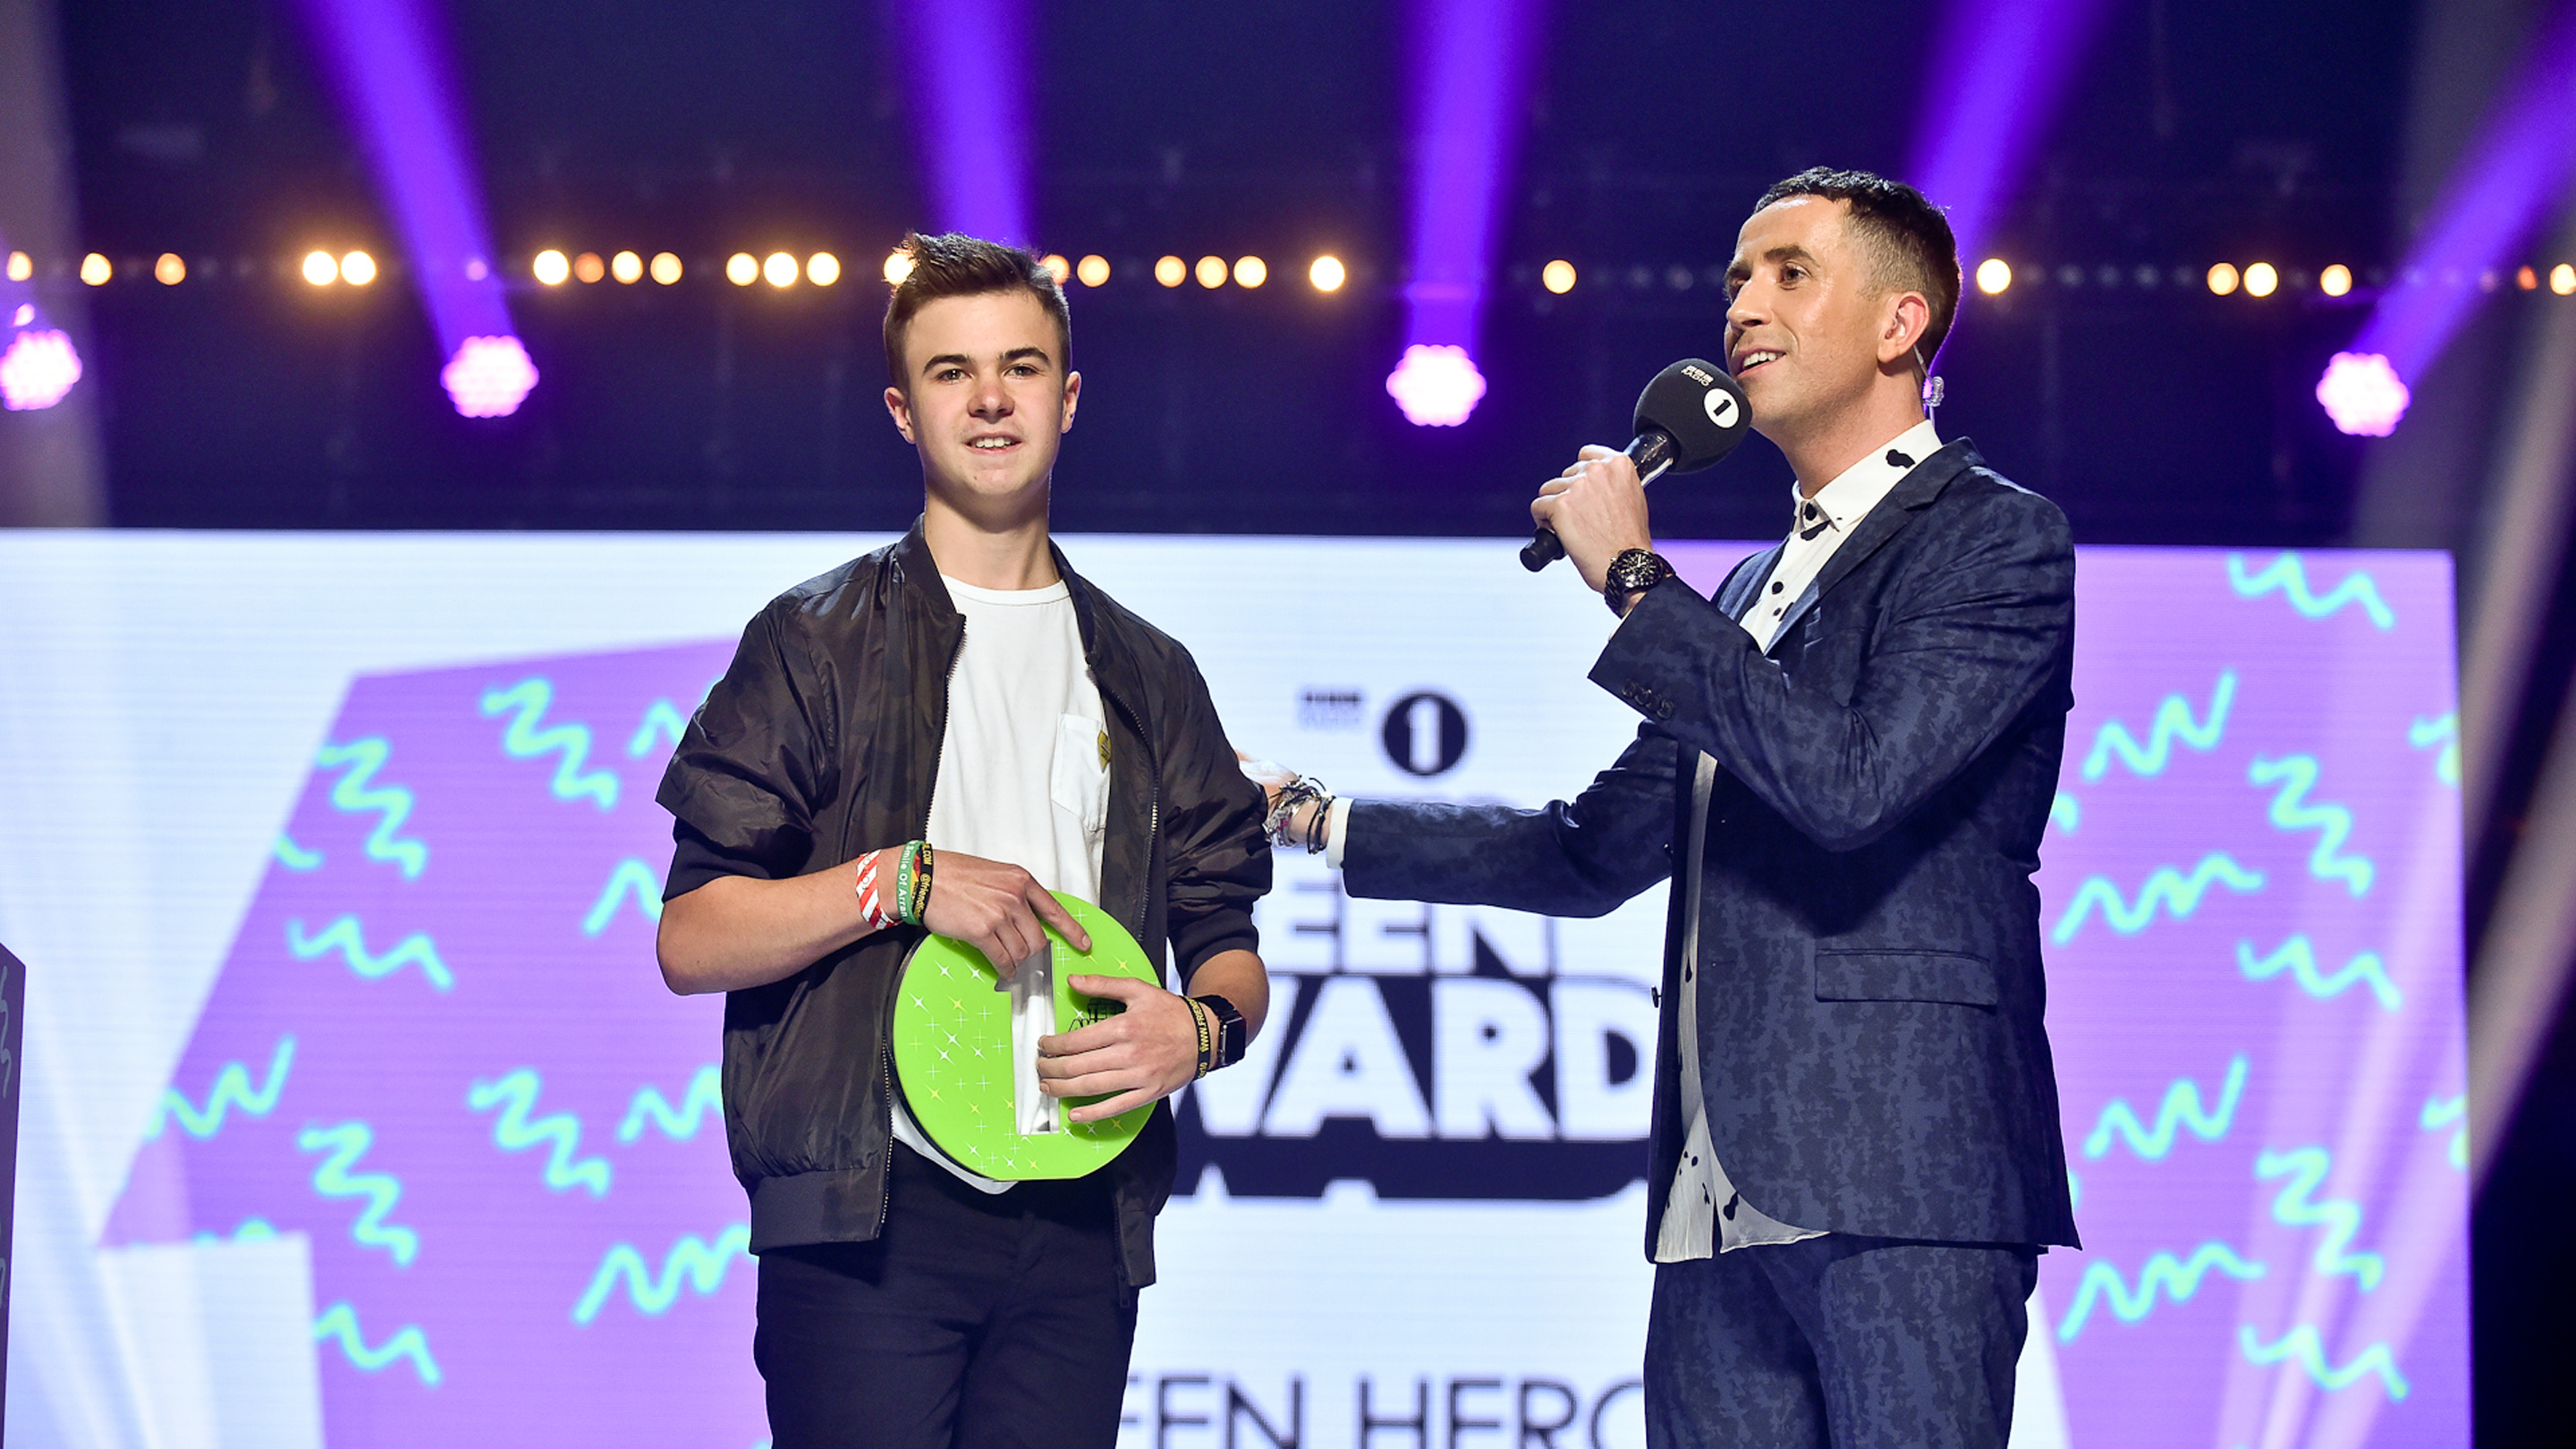 Lewis with Nick Grimshaw at the Radio 1 Teen Hero awards. (BBC Radio 1/PA)